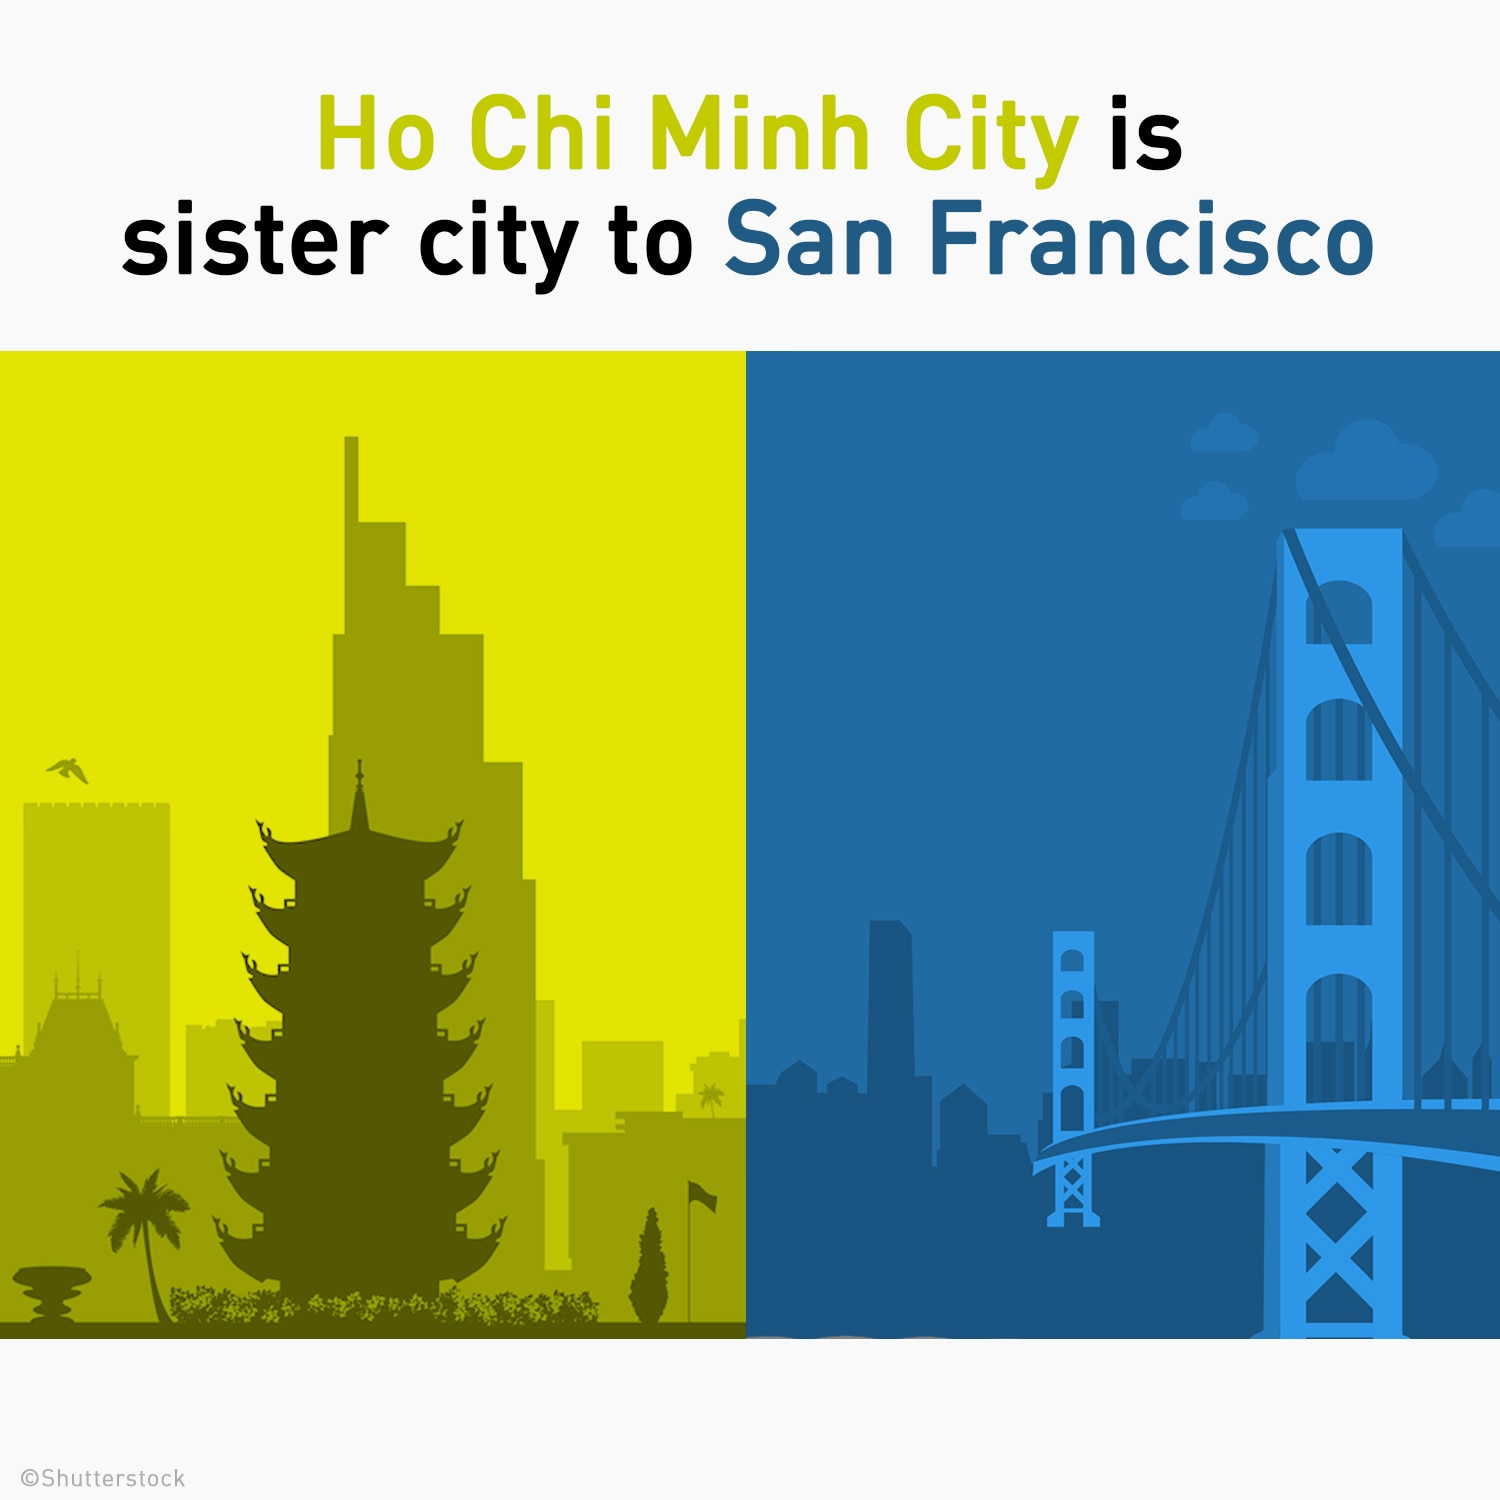 Silhouettes of Ho Chi Minh CIty and San Francisco skylines